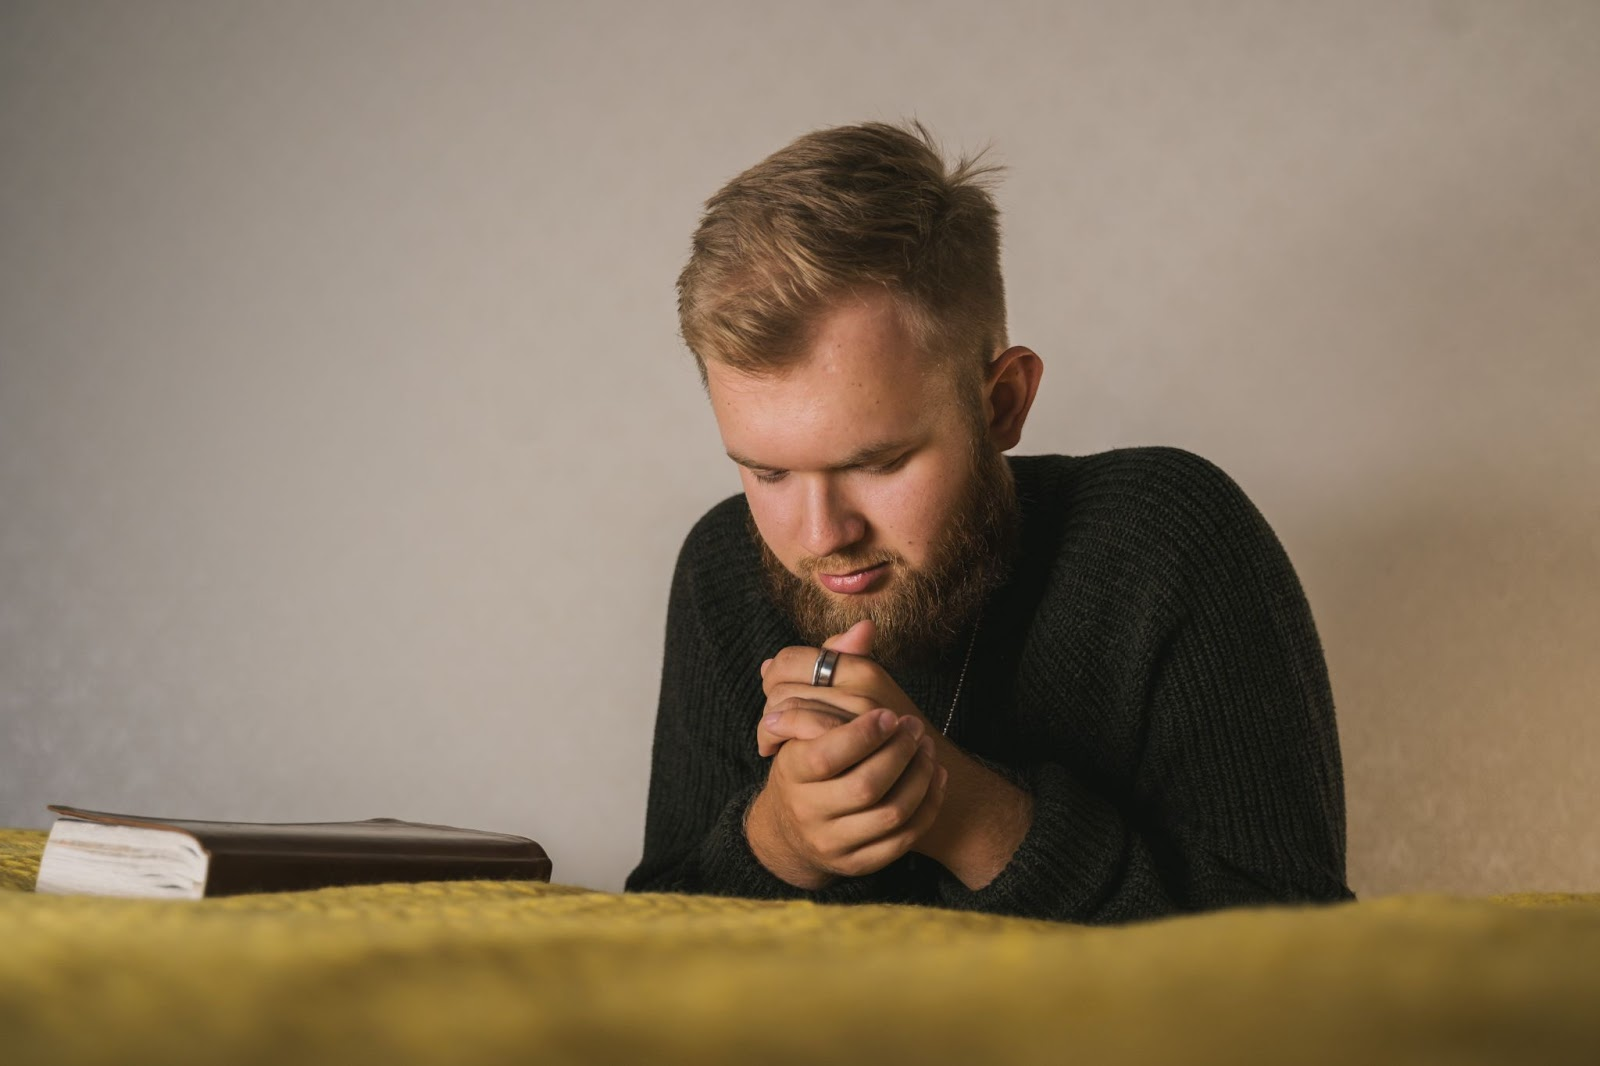 A young man prays at his bedside with a Bible